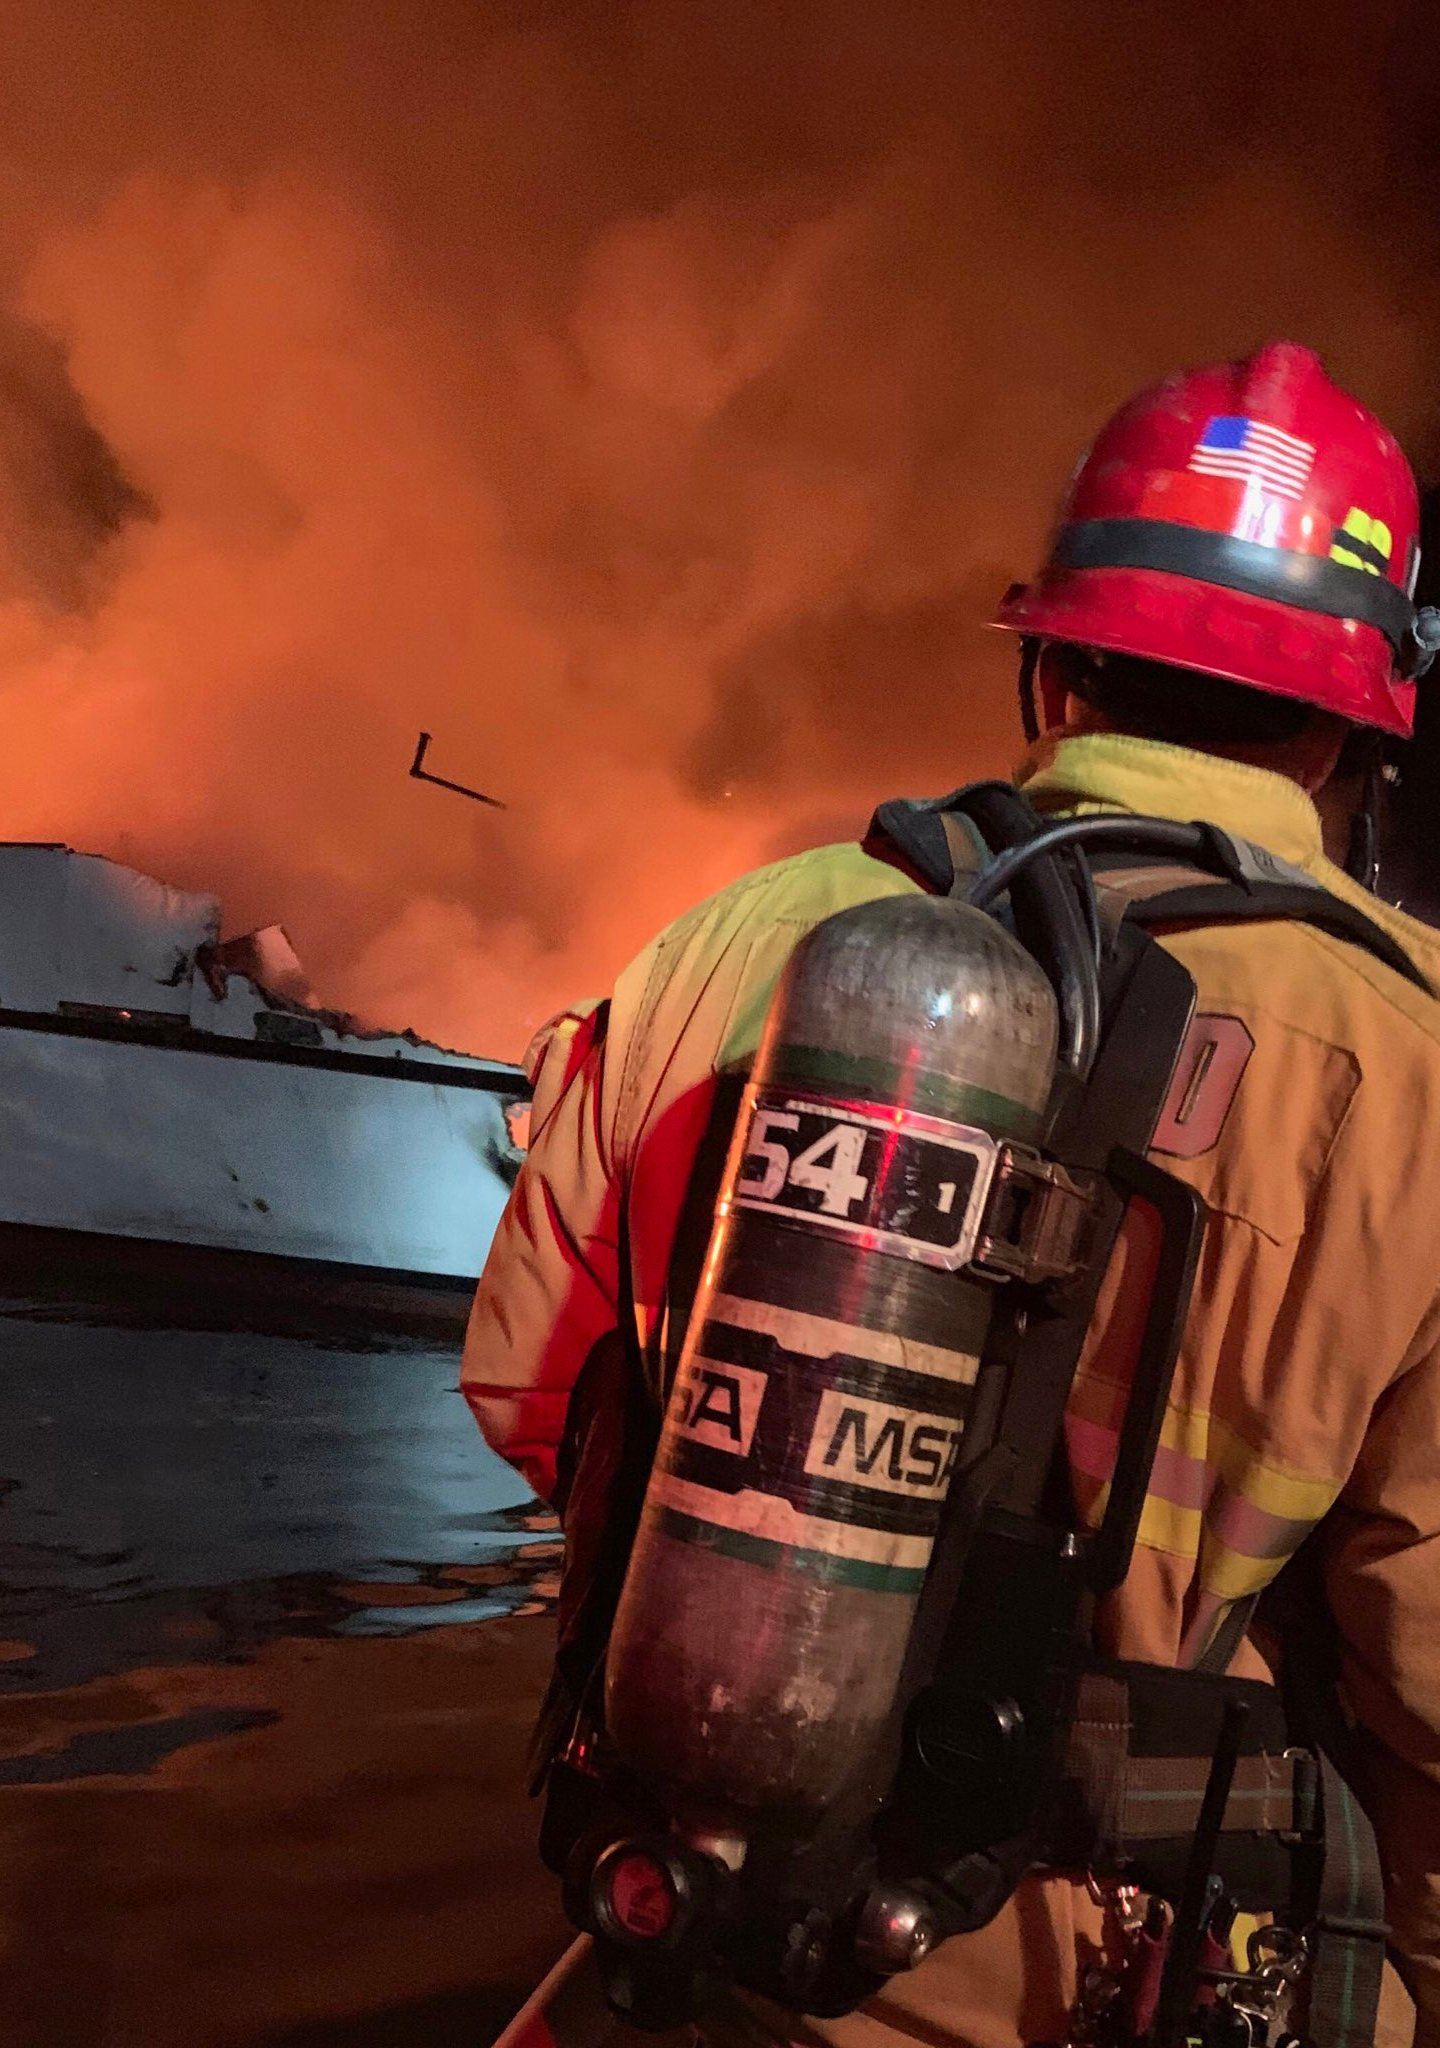 Crews respond to a boat fire near Santa Cruz Island on Sept. 2, 2019. (Credit: Ventura County Fire Department)